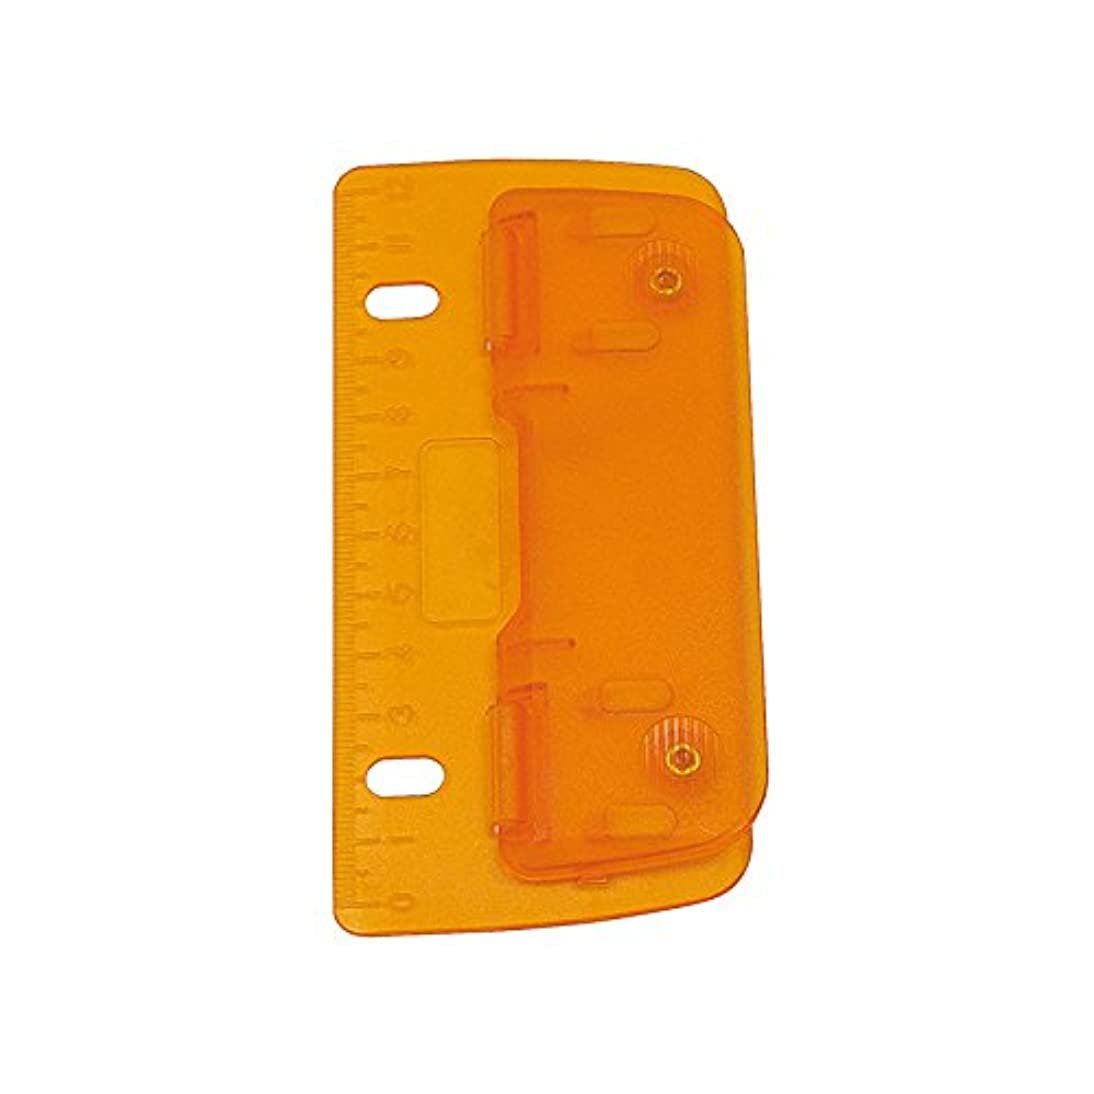 Wedo 67806 Double Hole Plastic Punch for Filing, for Punching 8 cm Holes, with a 12 cm Scale, Orange